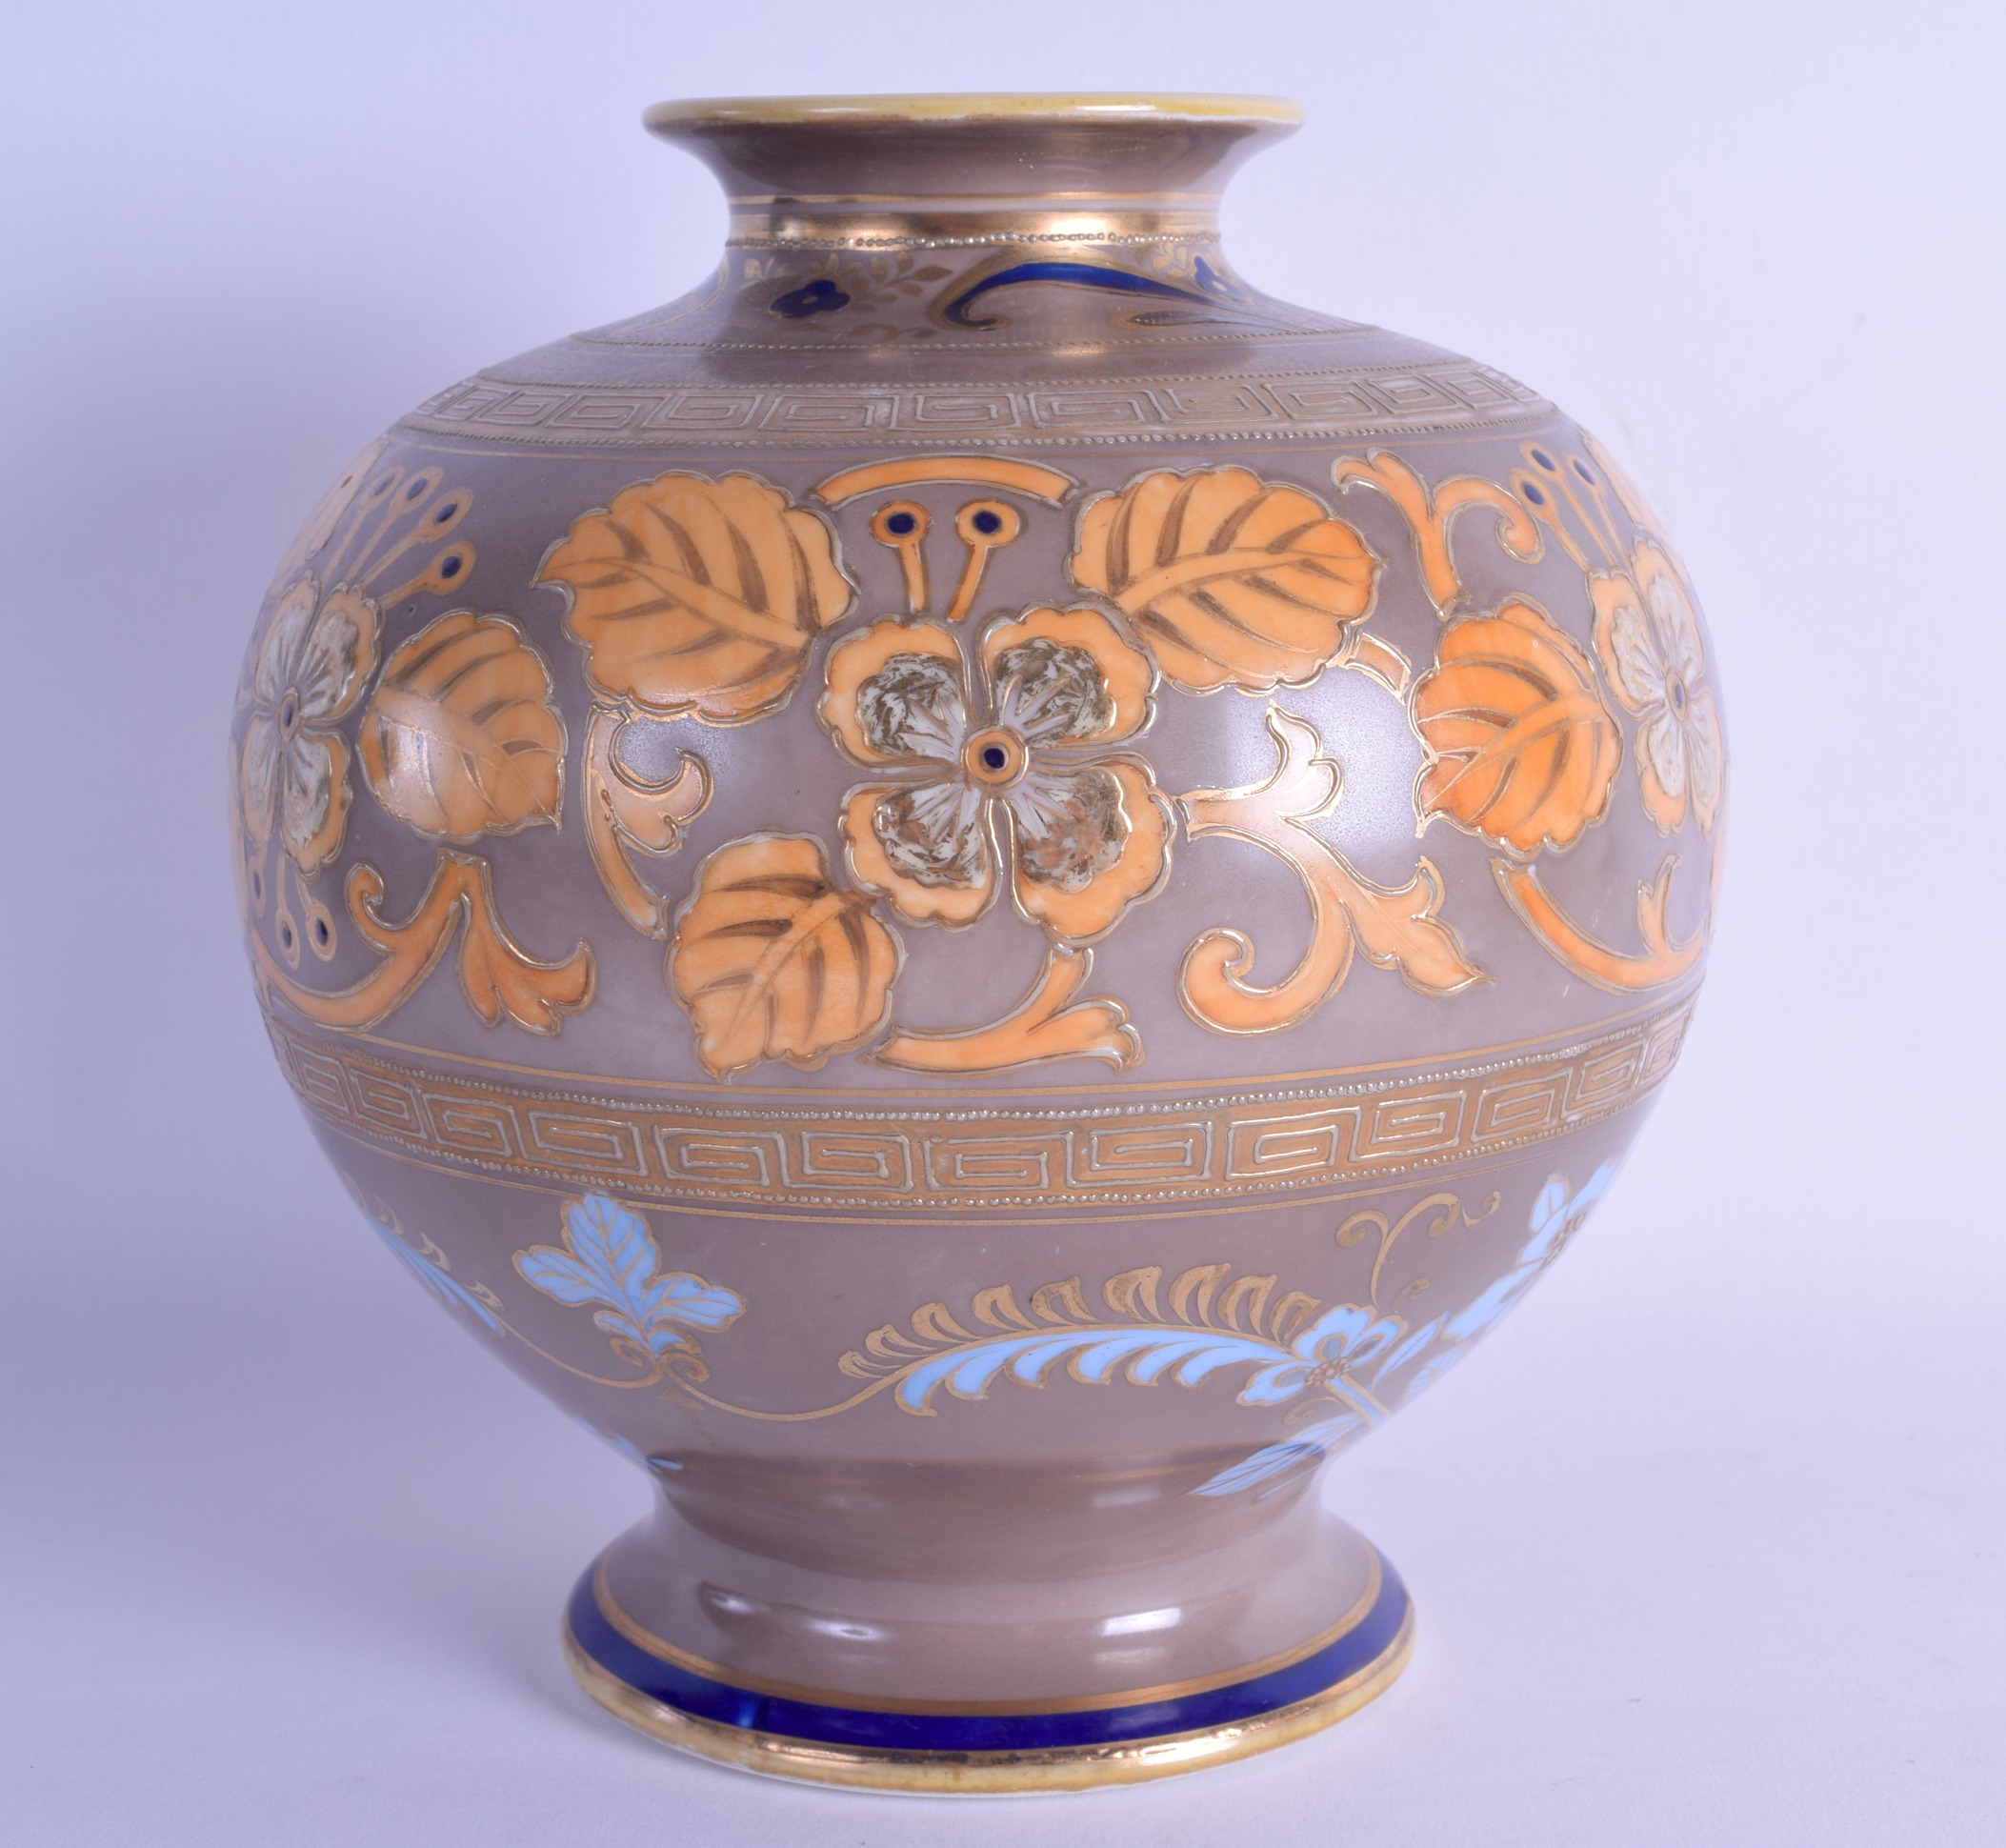 Lot 144 - 20th c. Noritake vase with two Greek key borders and orange plants highlighted in gold. 18cm high